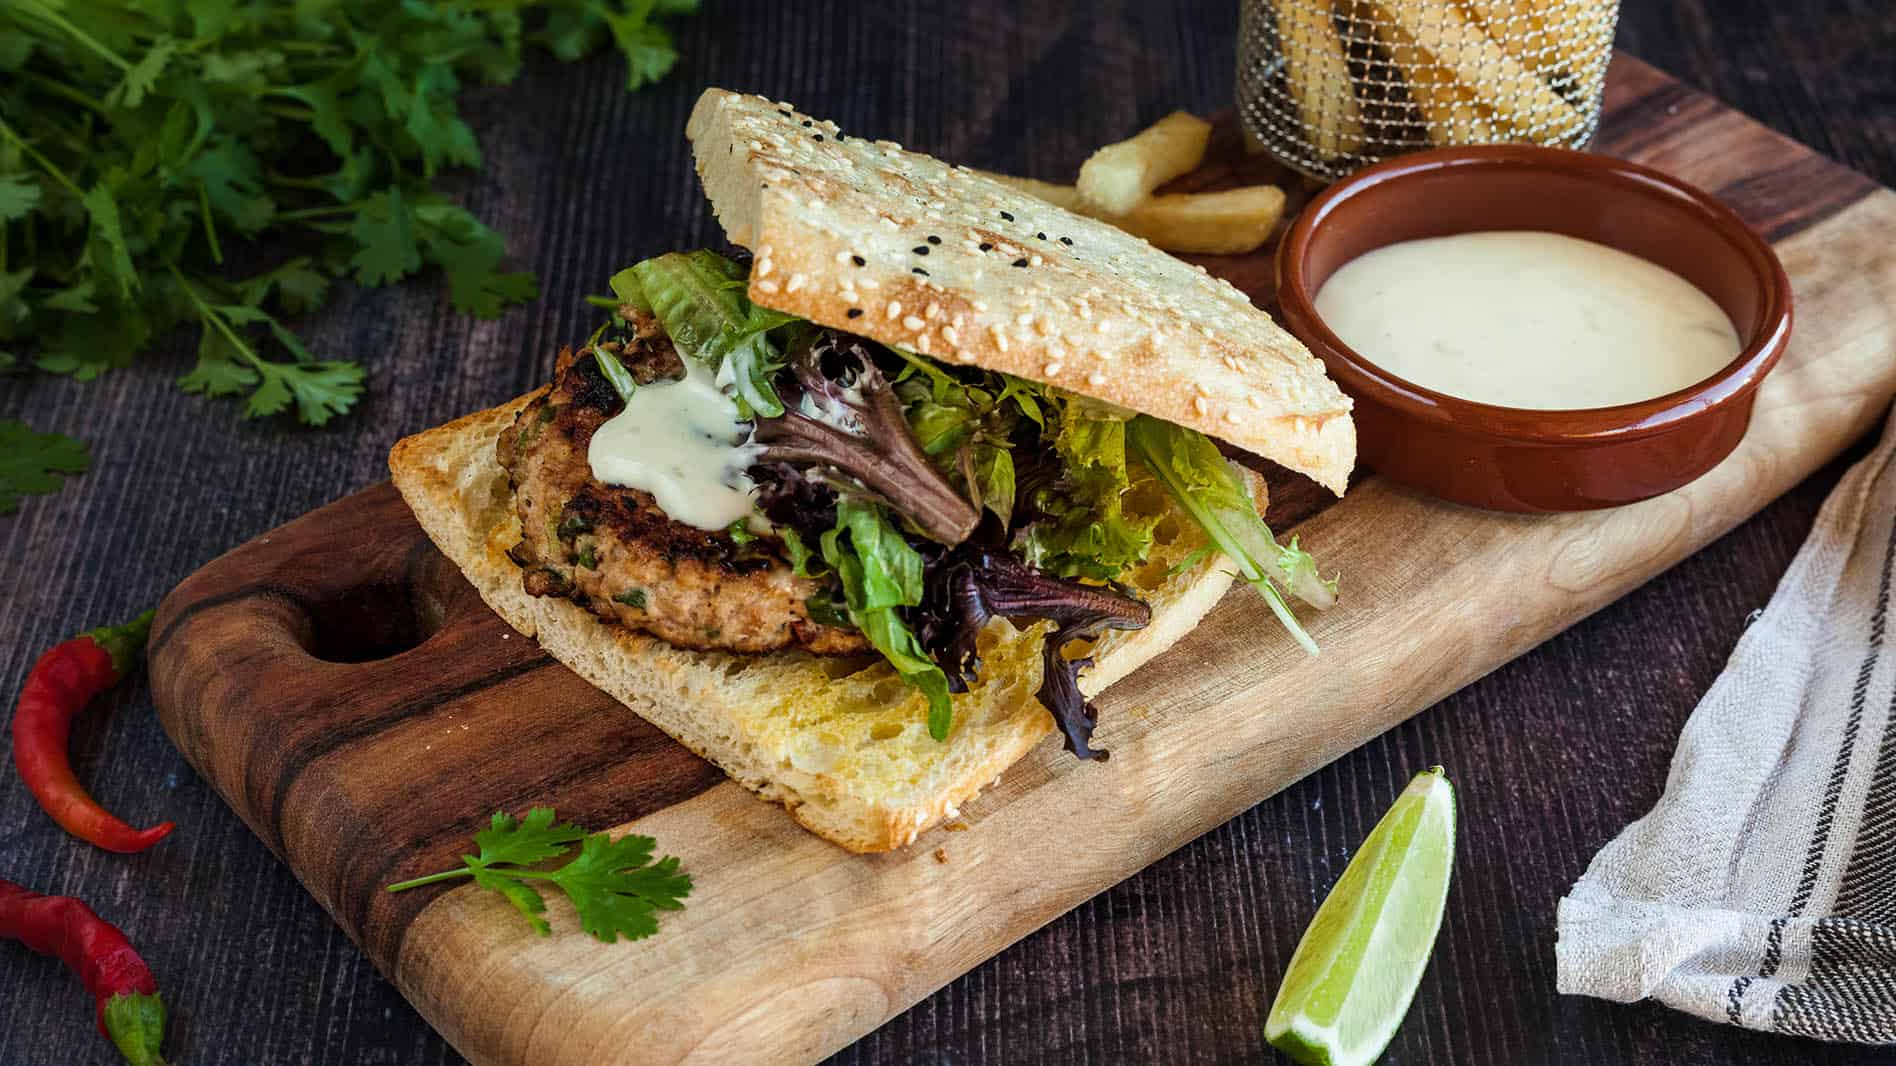 Coriander and Chilli Infused Chicken Burger with Lime Mayonnaise